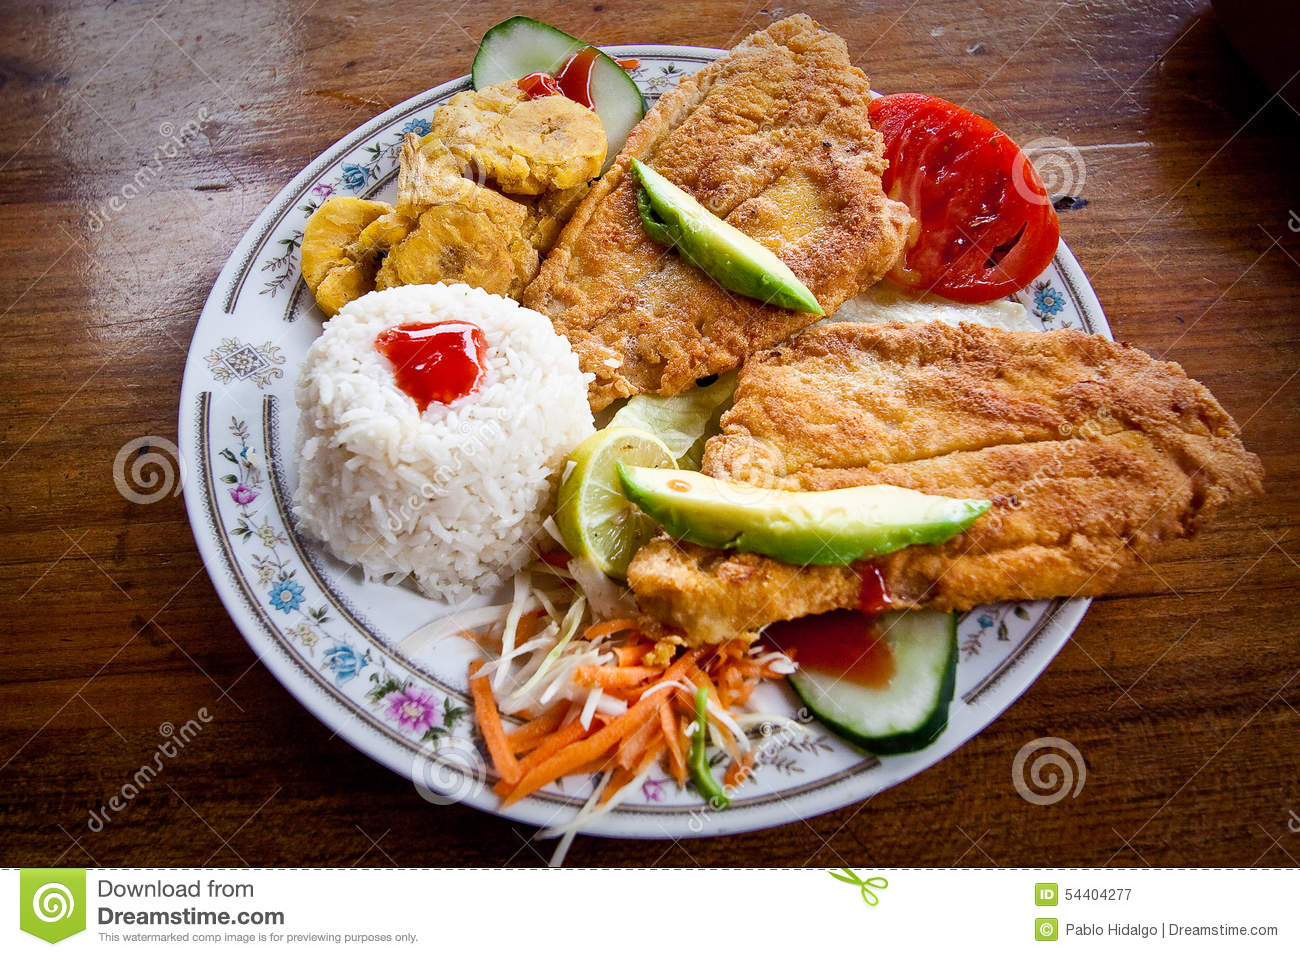 how to cook breaded fish